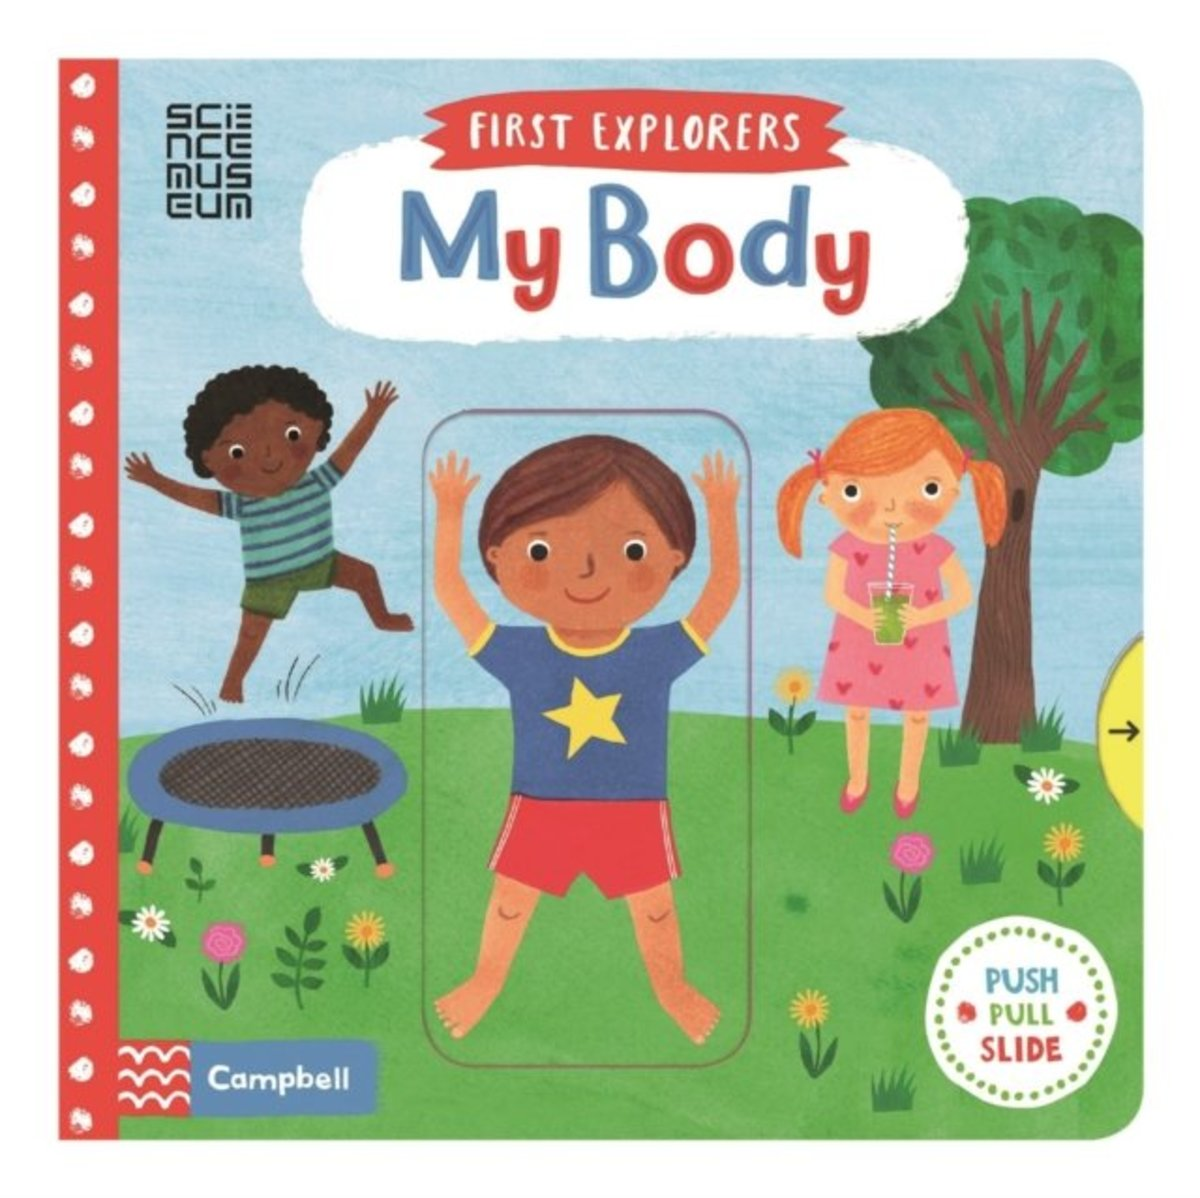 First Explorers: My Body